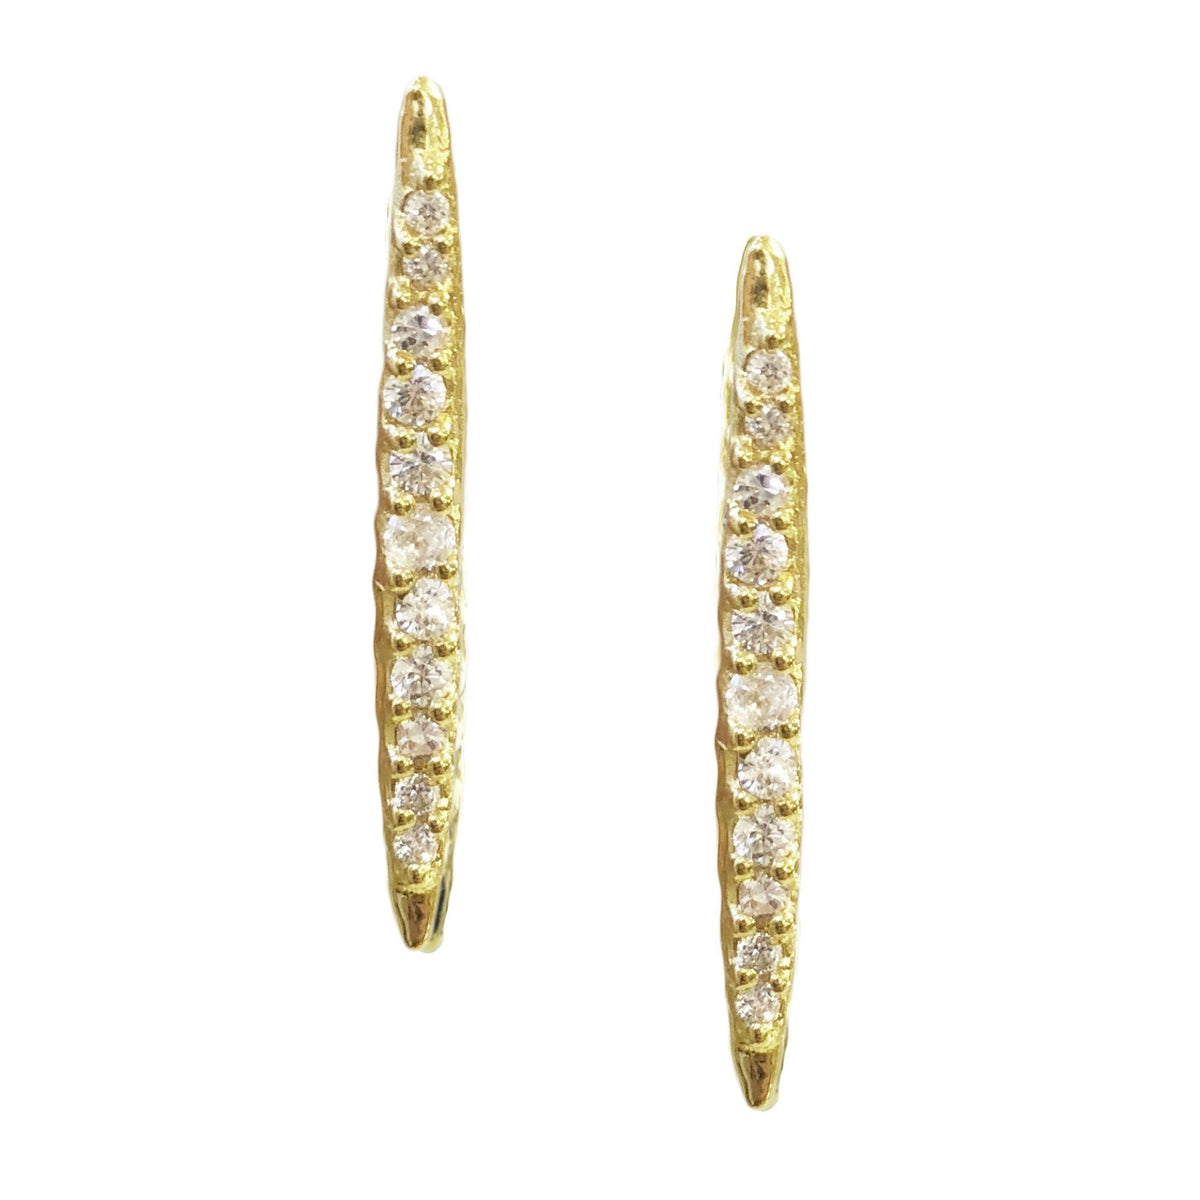 DREAM STARDUST STUDS - CUBIC ZIRCONIA & GOLD - SO PRETTY CARA COTTER